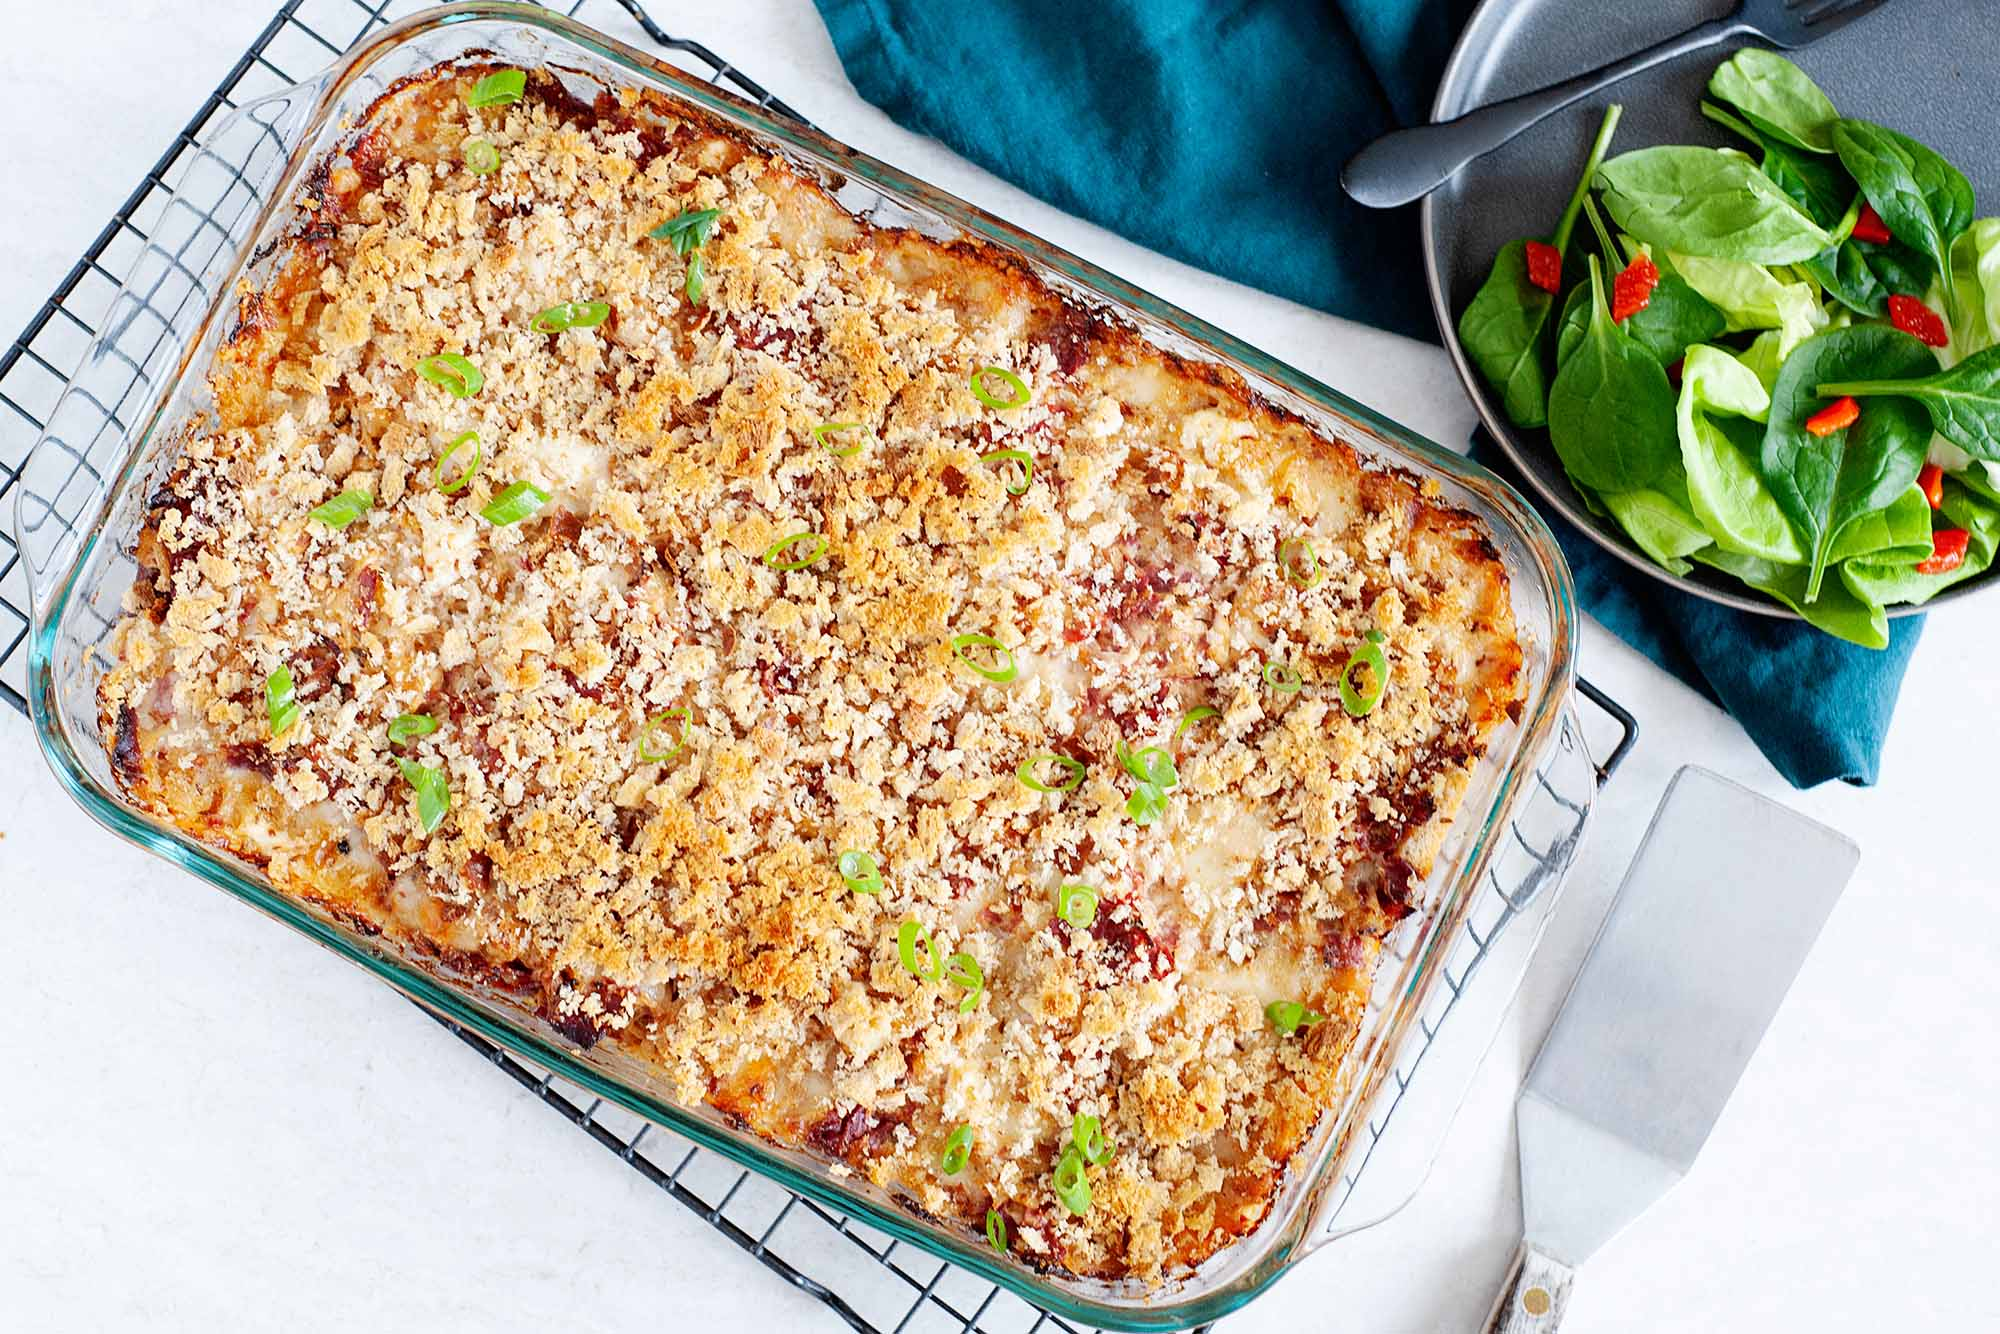 A golden brown baked reuben casserole is cooling on a rack. A metal spatula is in the lower right hand corner. A matte grey plate has a side salad and black fork in the upper right. A dark teal linen is under the plate.